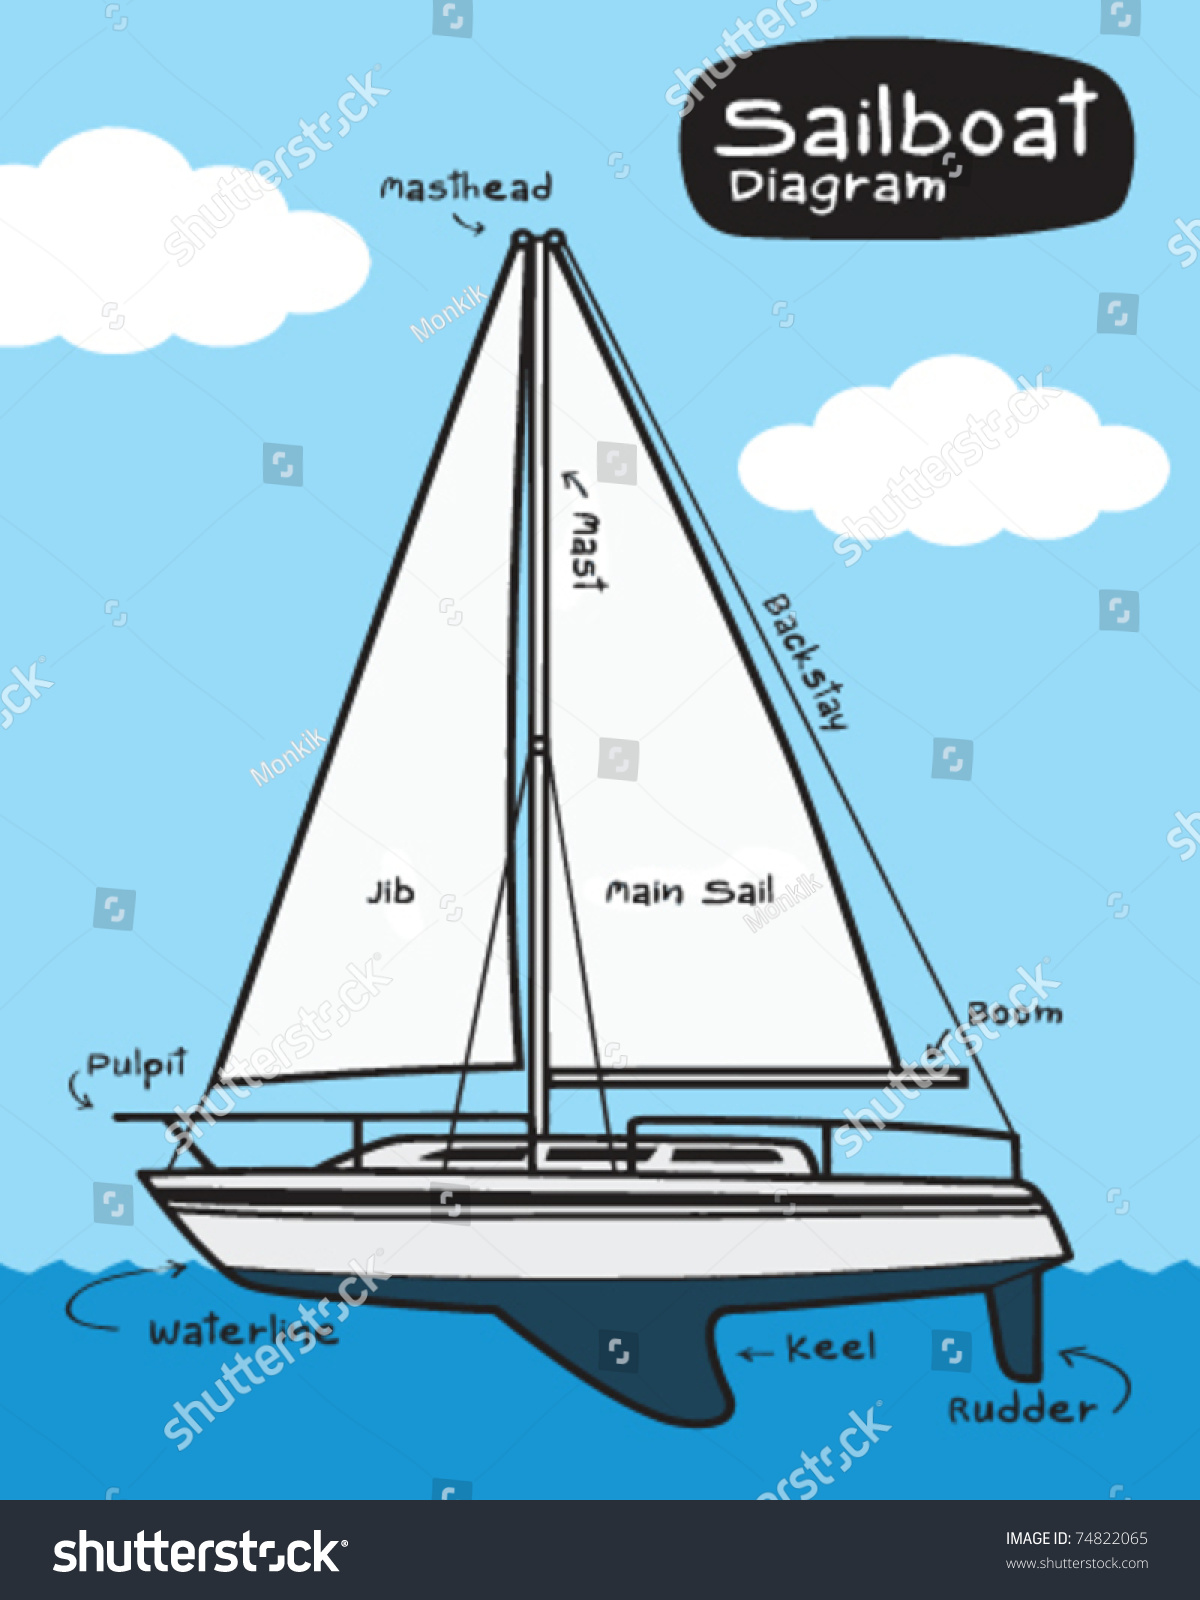 Sailboat Diagram Stock Vector